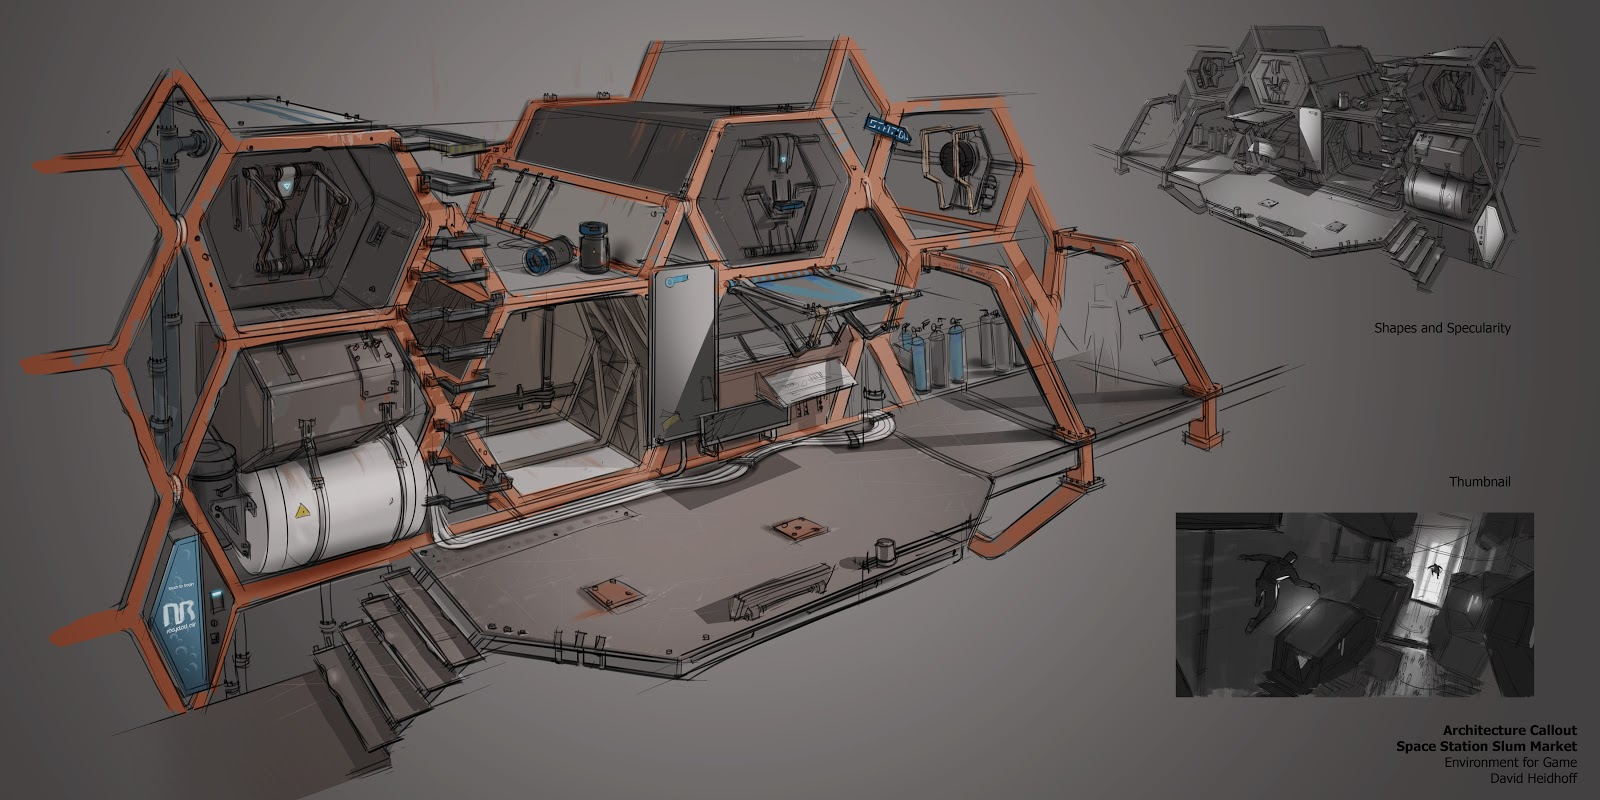 David heidhoff concept art blog space station slums for The concept of space in mamluk architecture